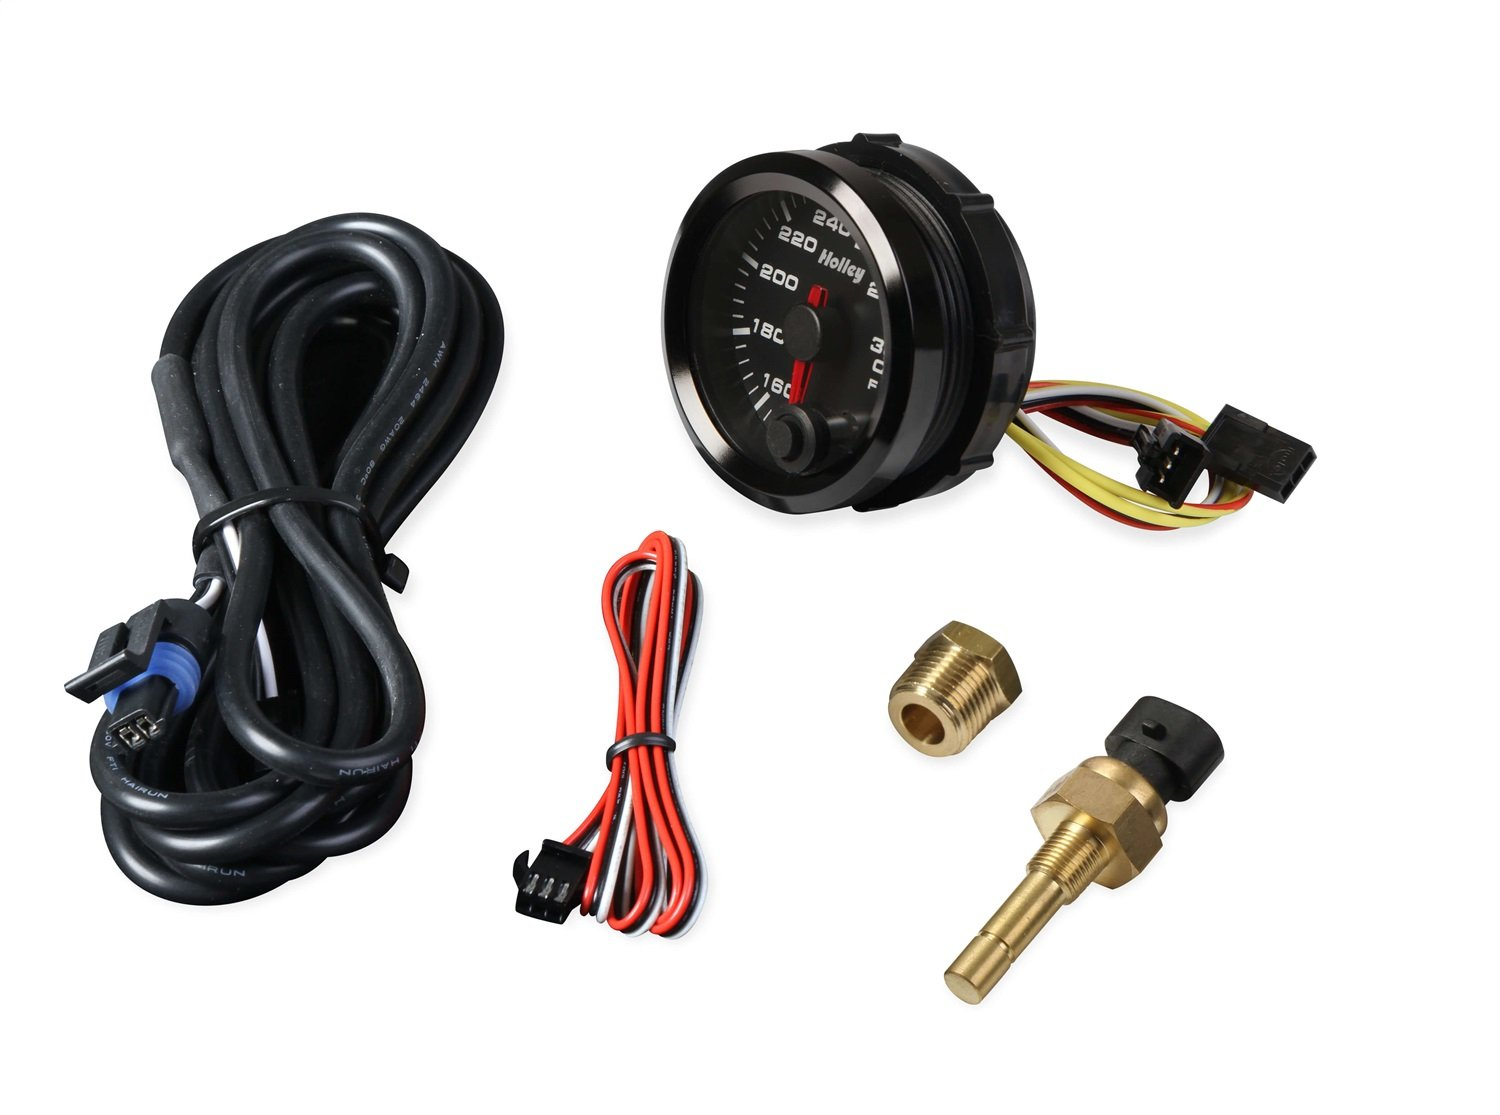 Holley 26-604 Holley Analog Style Oil Temperature Gauge 2 1/16 in. Dia. 140-300 Degree Black Face Black Bezel Holley Logo Holley Analog Style Oil Temperature Gauge